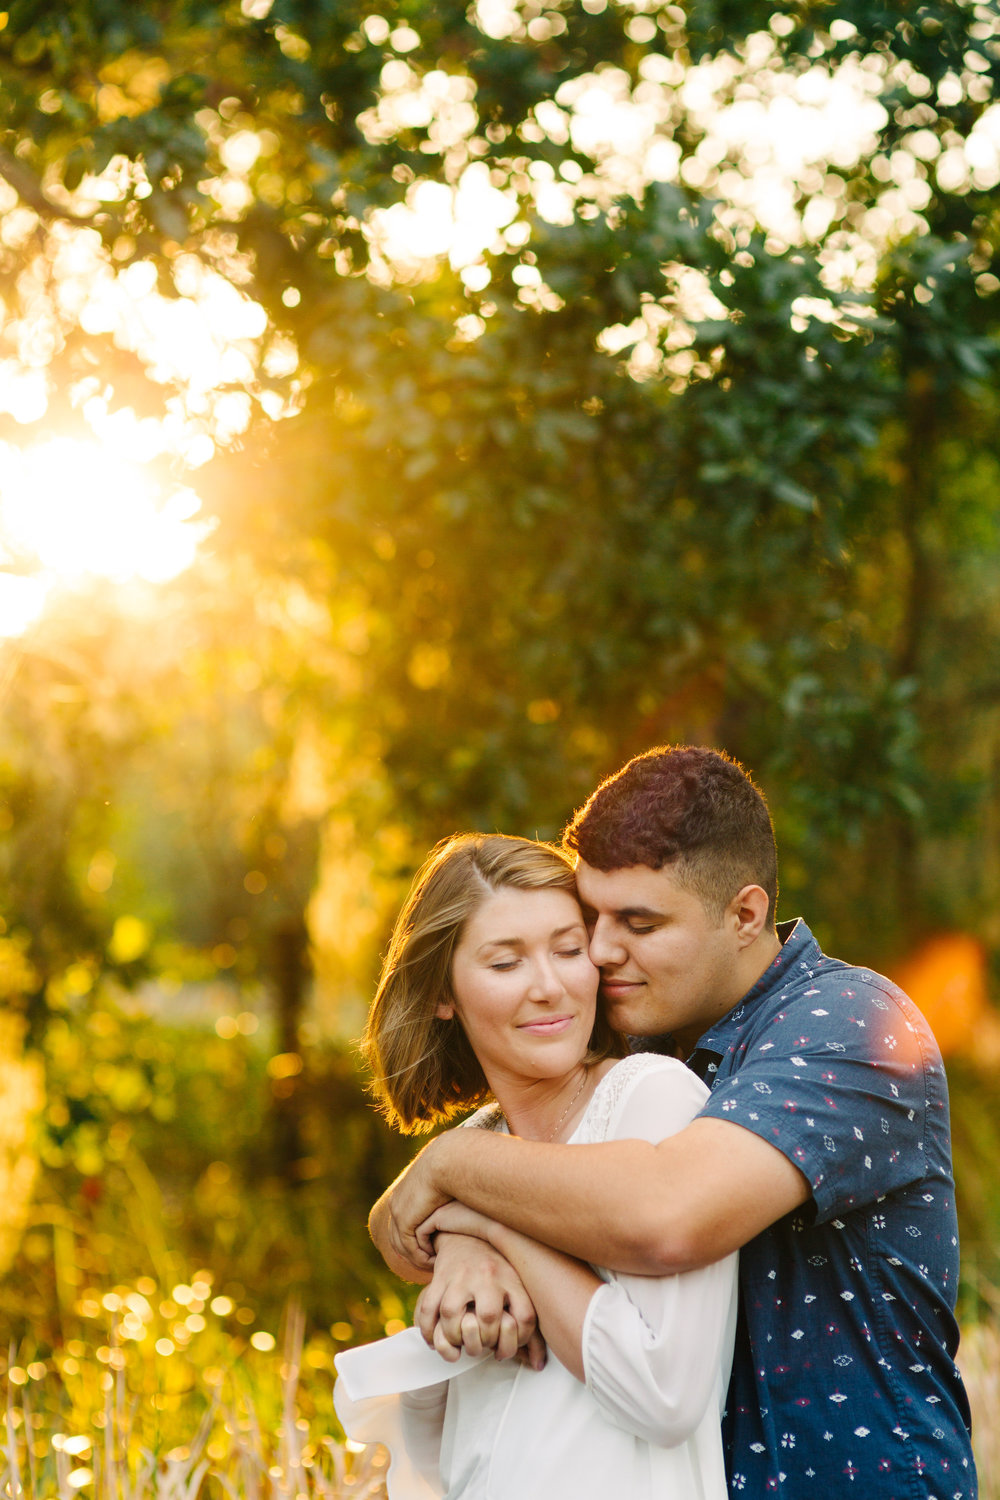 At Home Engagement Session with Daniel and Lily by Jake and Katie Photography Tampa Florida